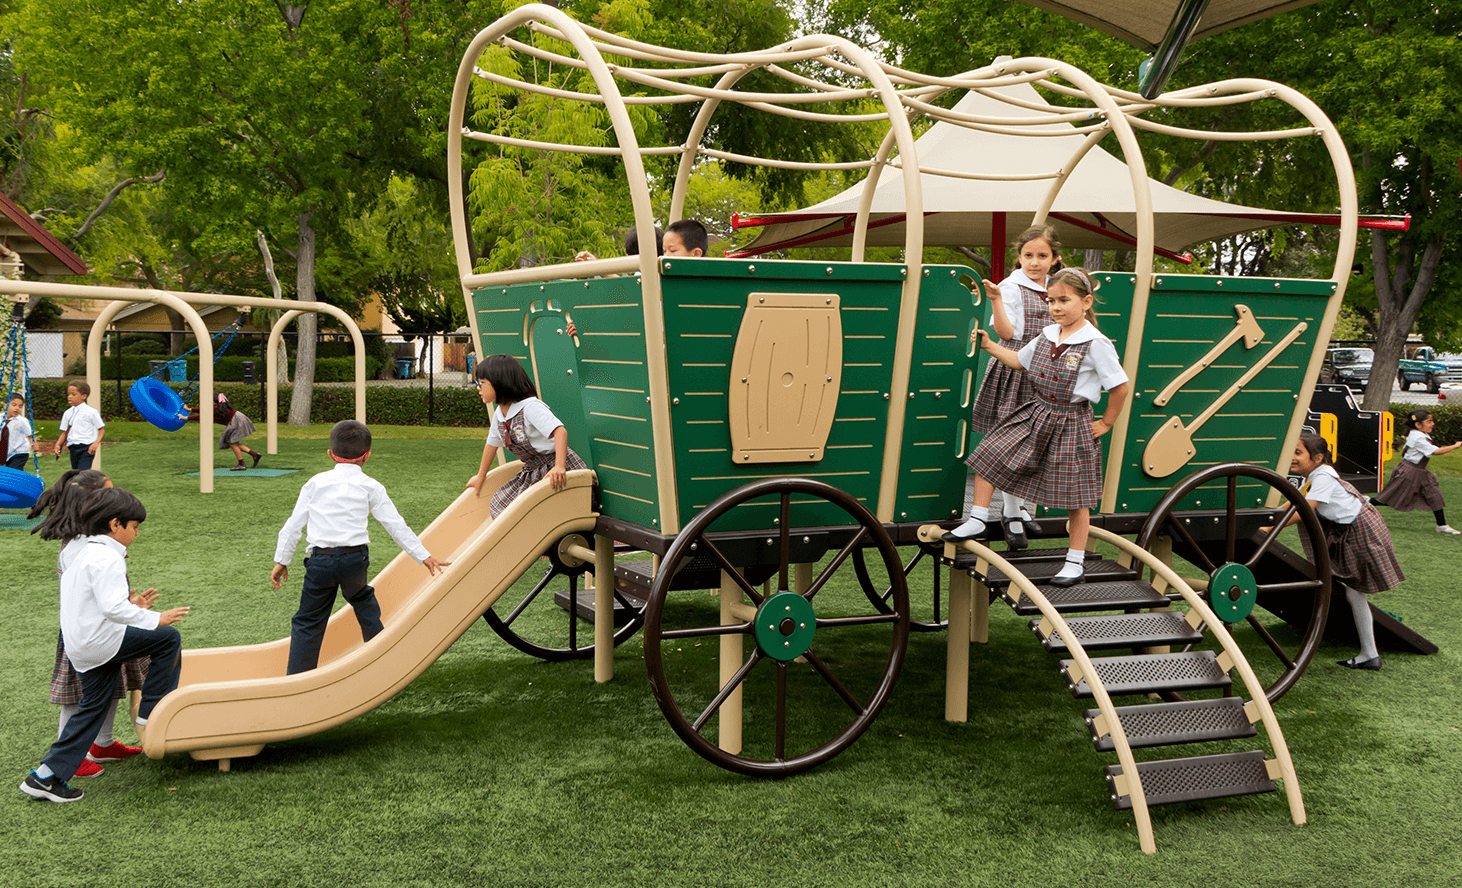 Playground | Challenger School - Middlefield | Private School In Palo Alto, California